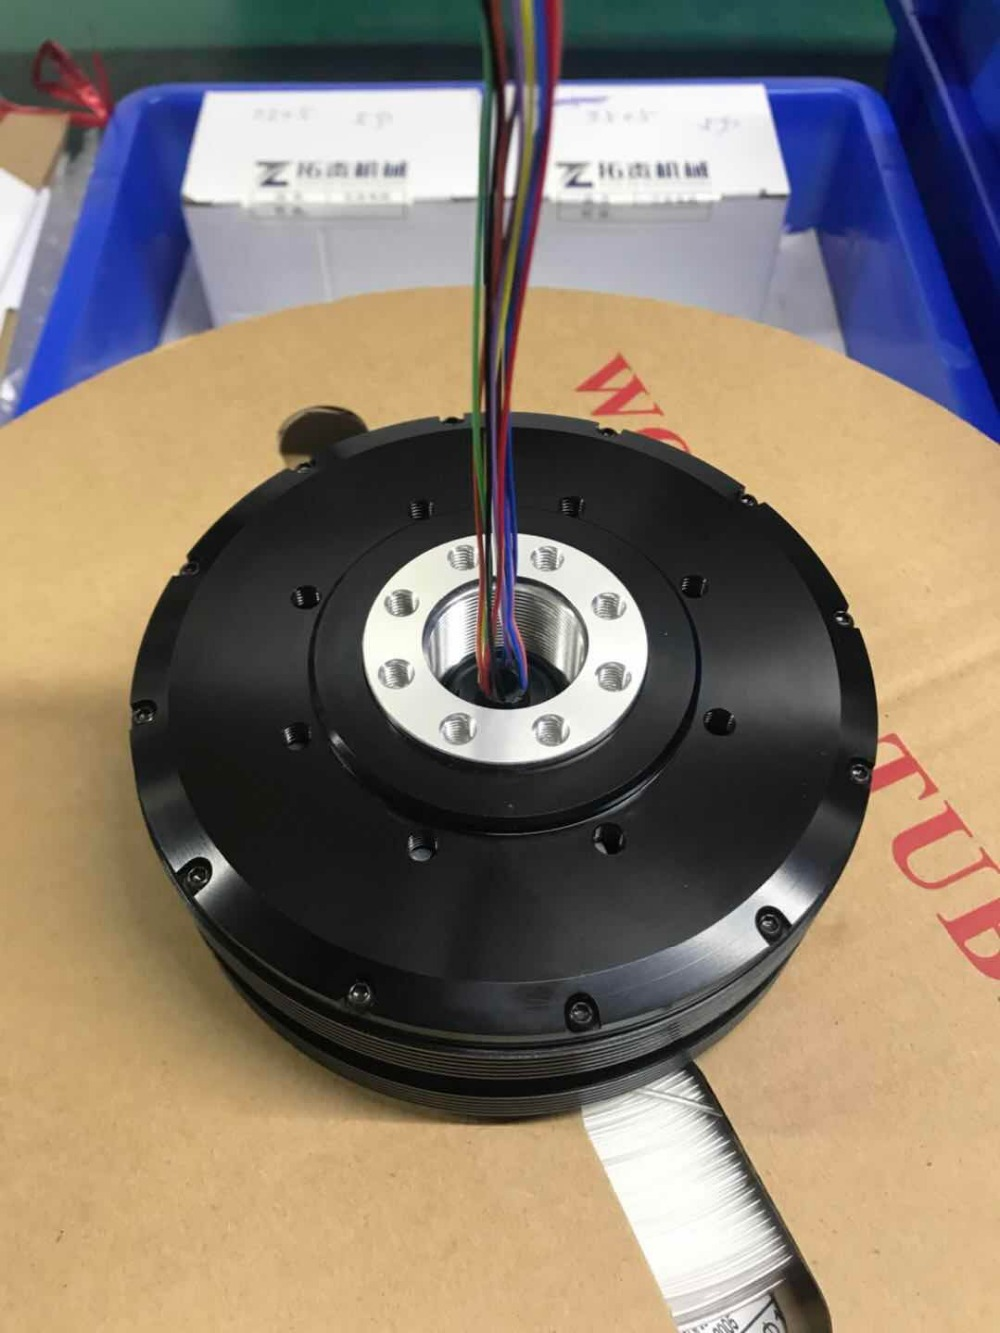 GB120 gimbal motor with AS5048a encorder slip ring for alexmos basecam 32bit BGC PRO gimbal controller RED MOVI gimbal 20-30kgs